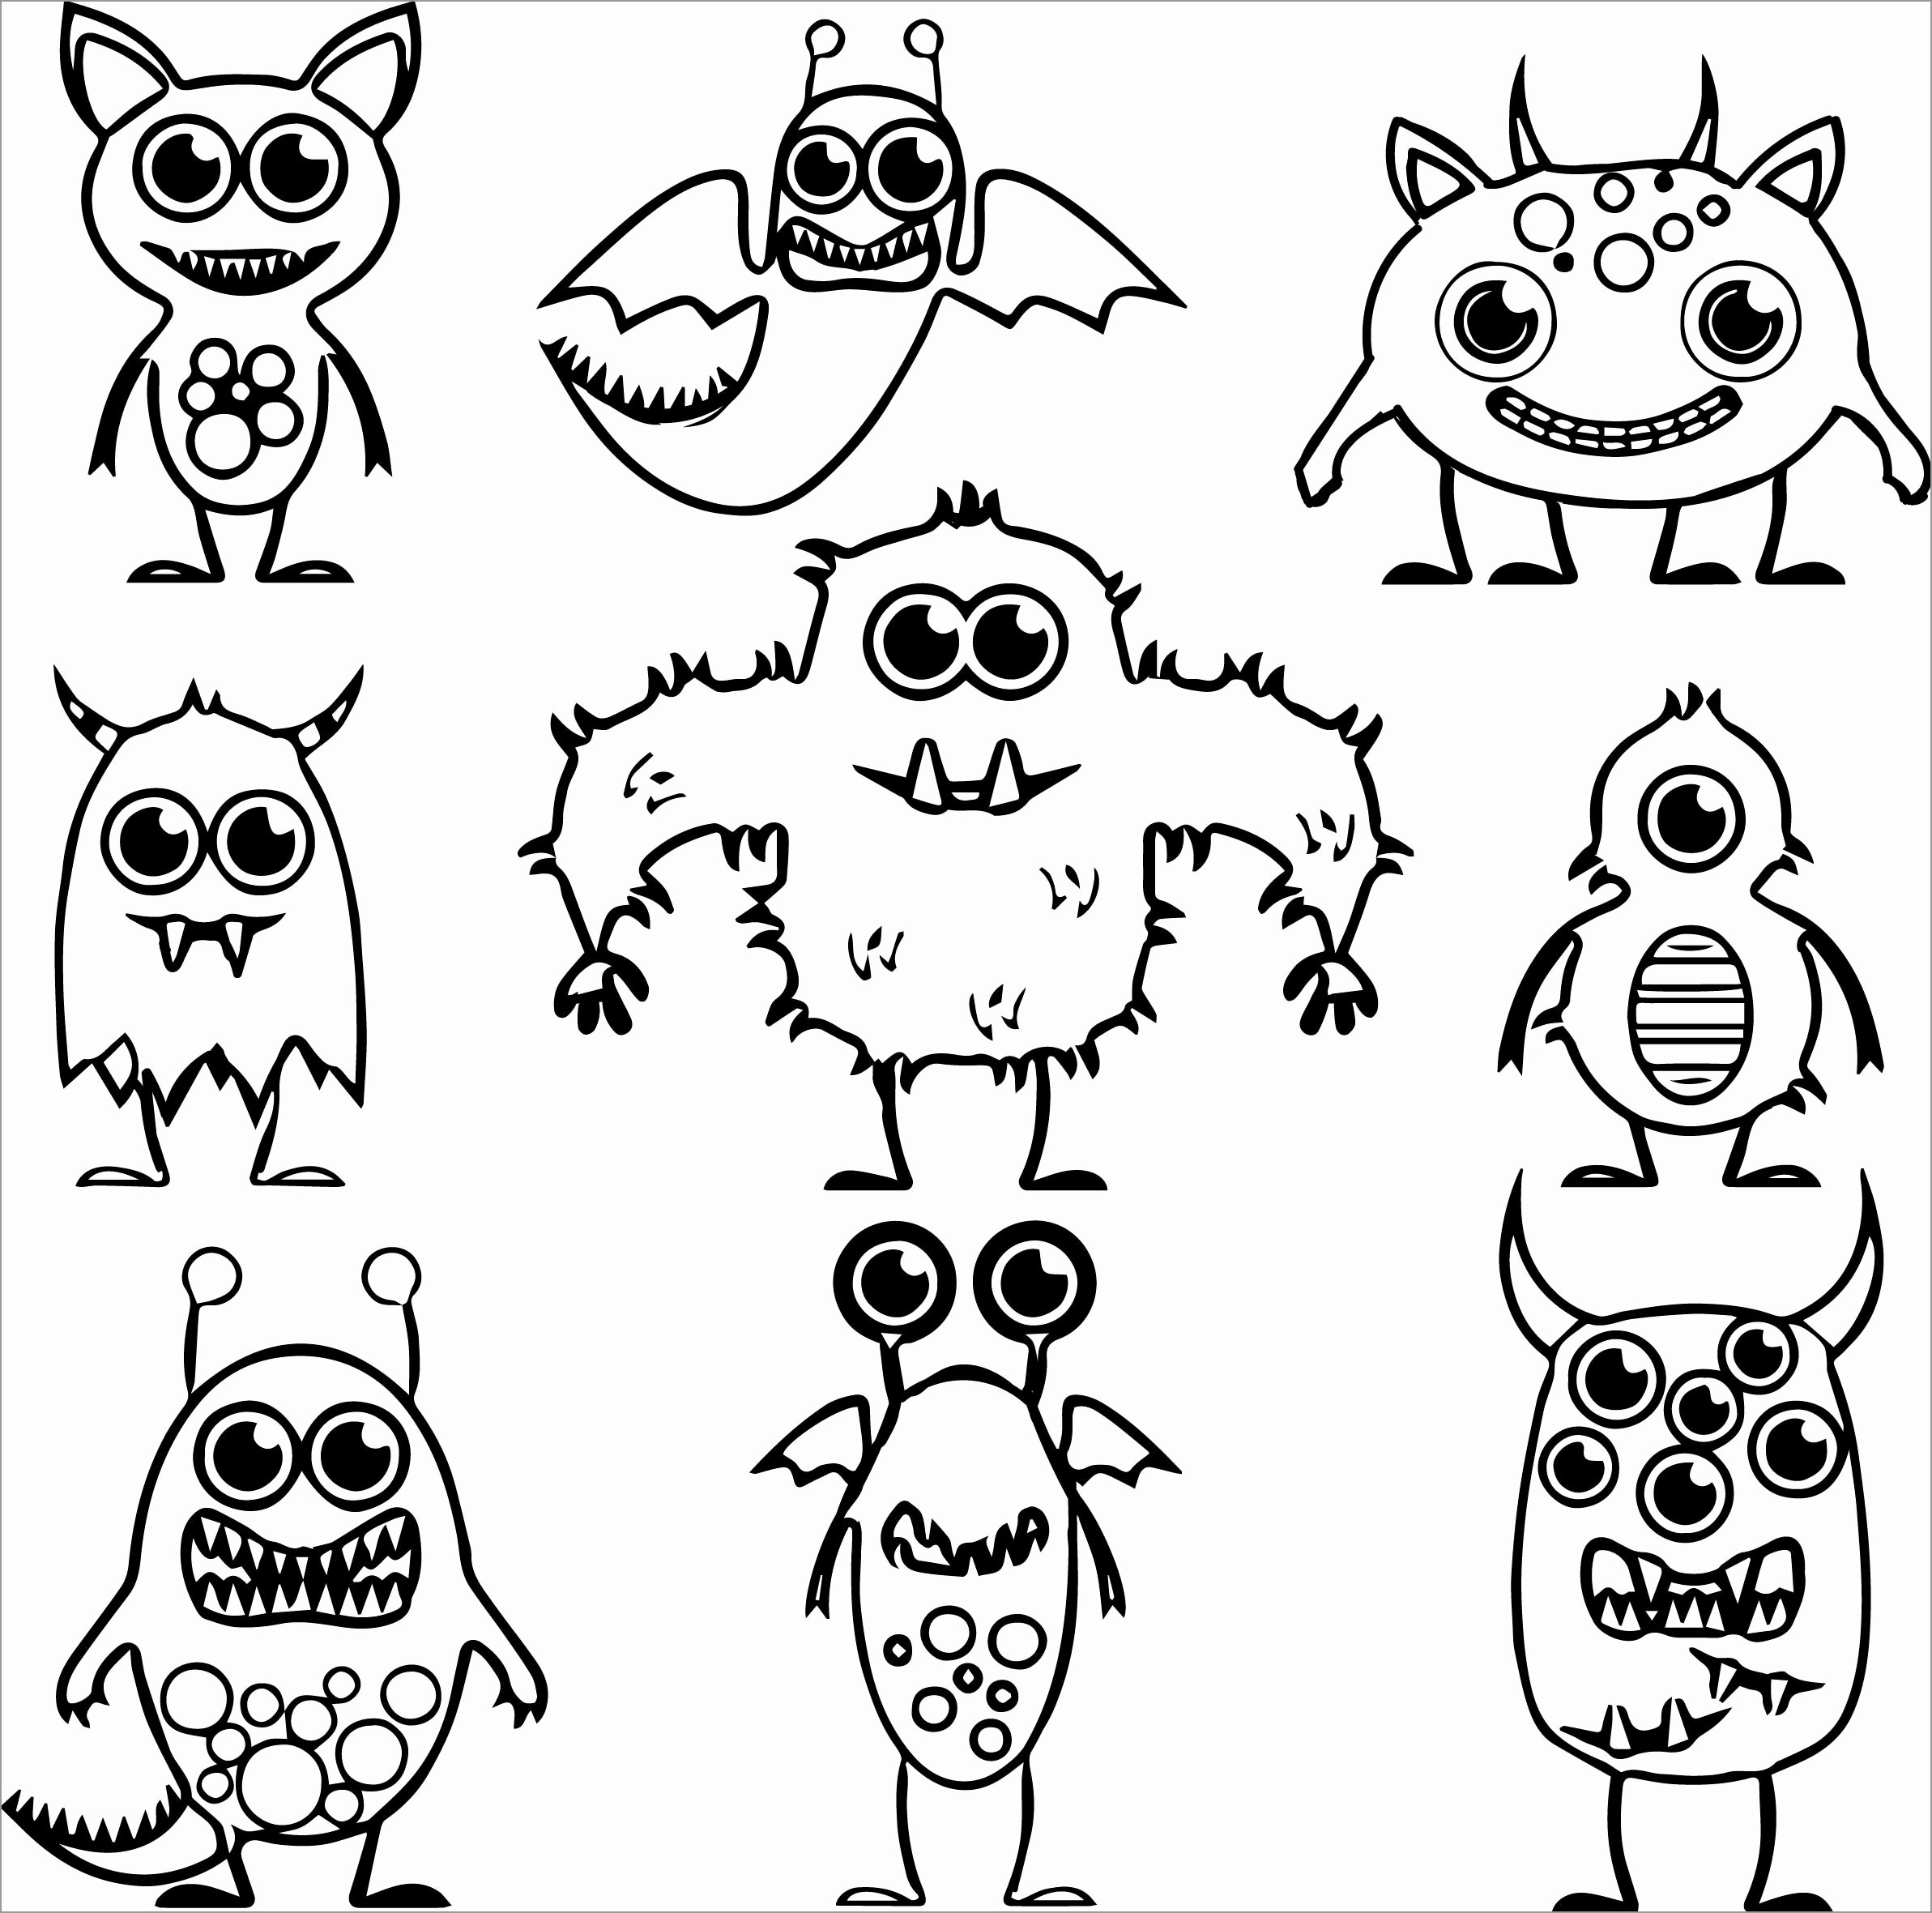 Toy Story Alien Coloring Page